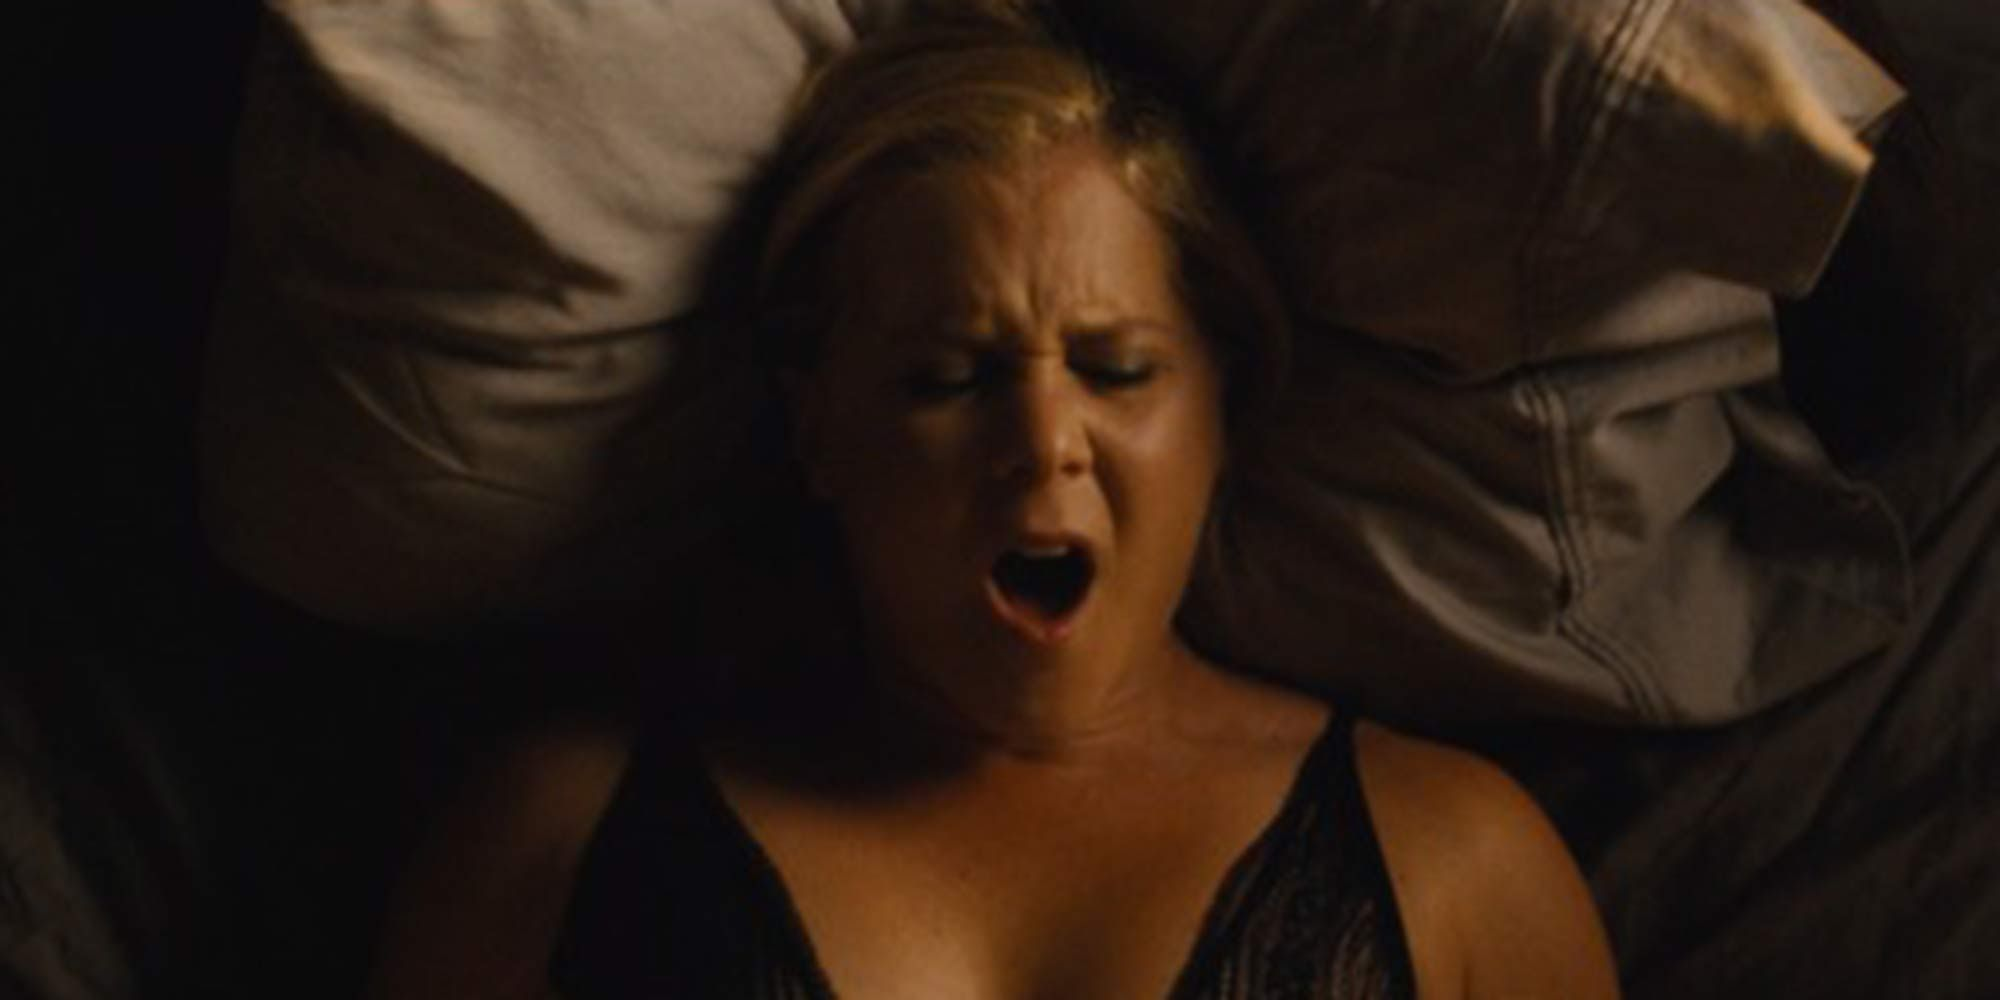 orgasm, female orgasm, different types of female orgasm, amy schumer, trainwreck,